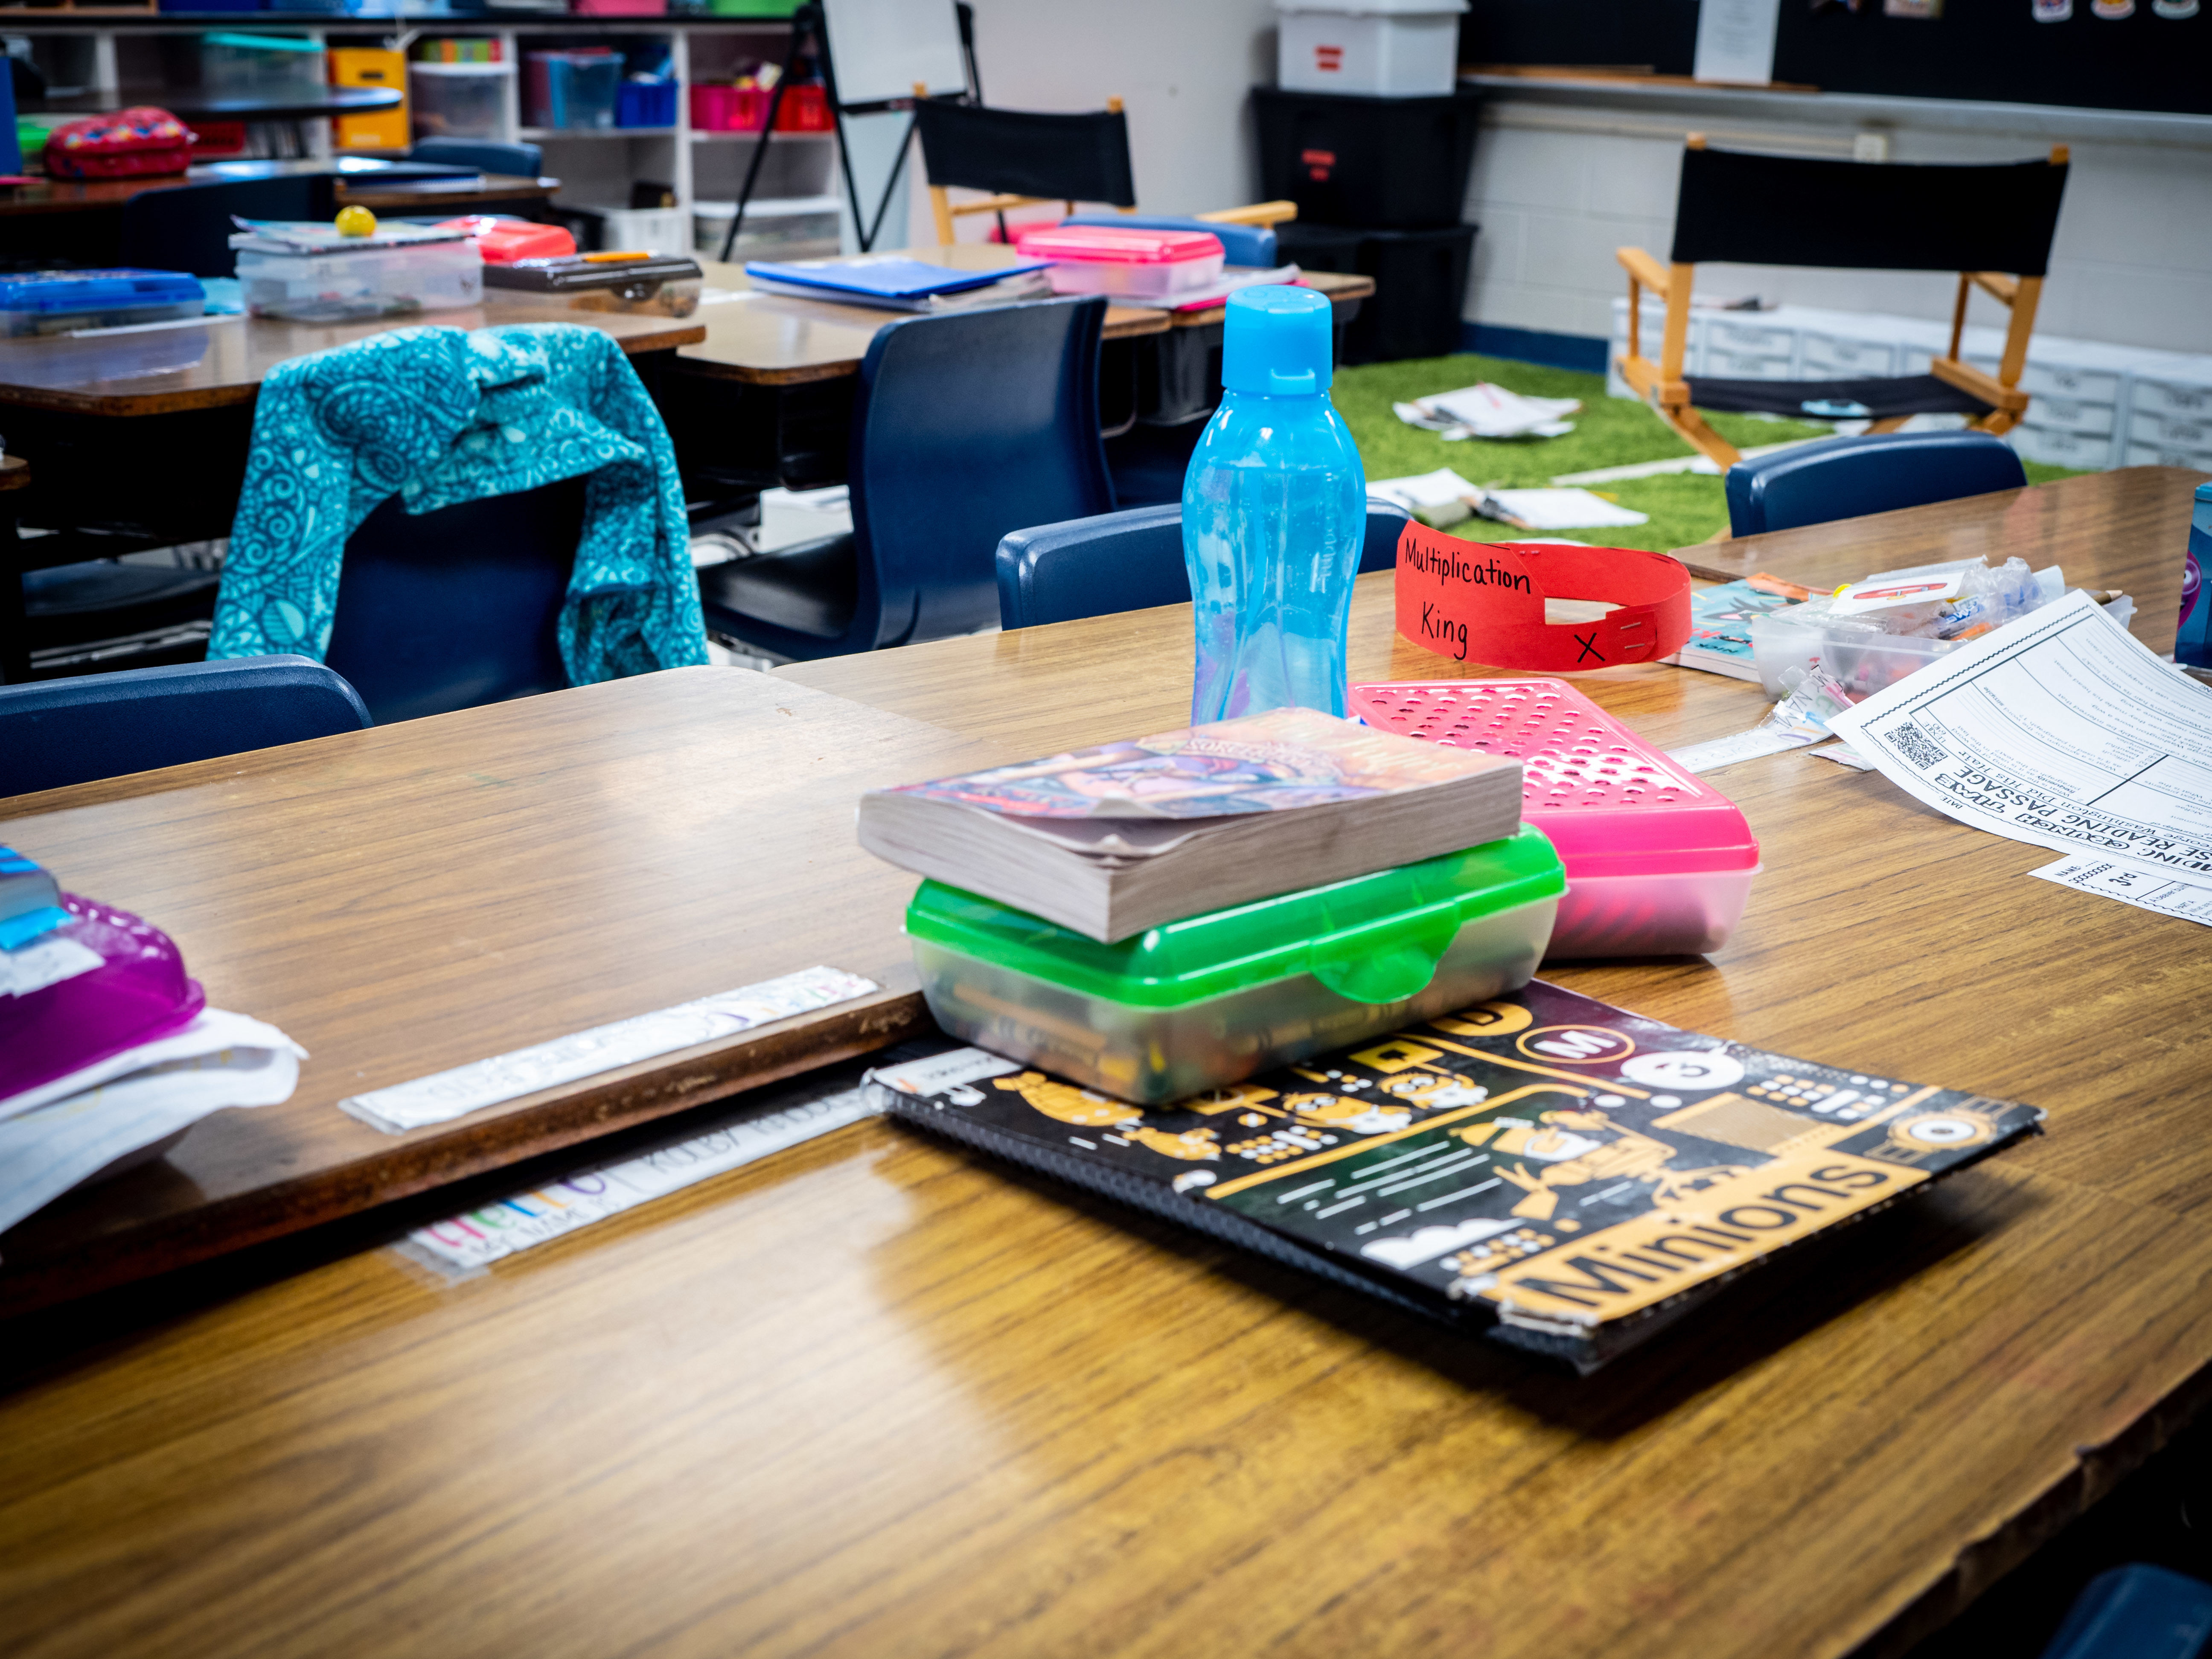 Image of student desks with school materials